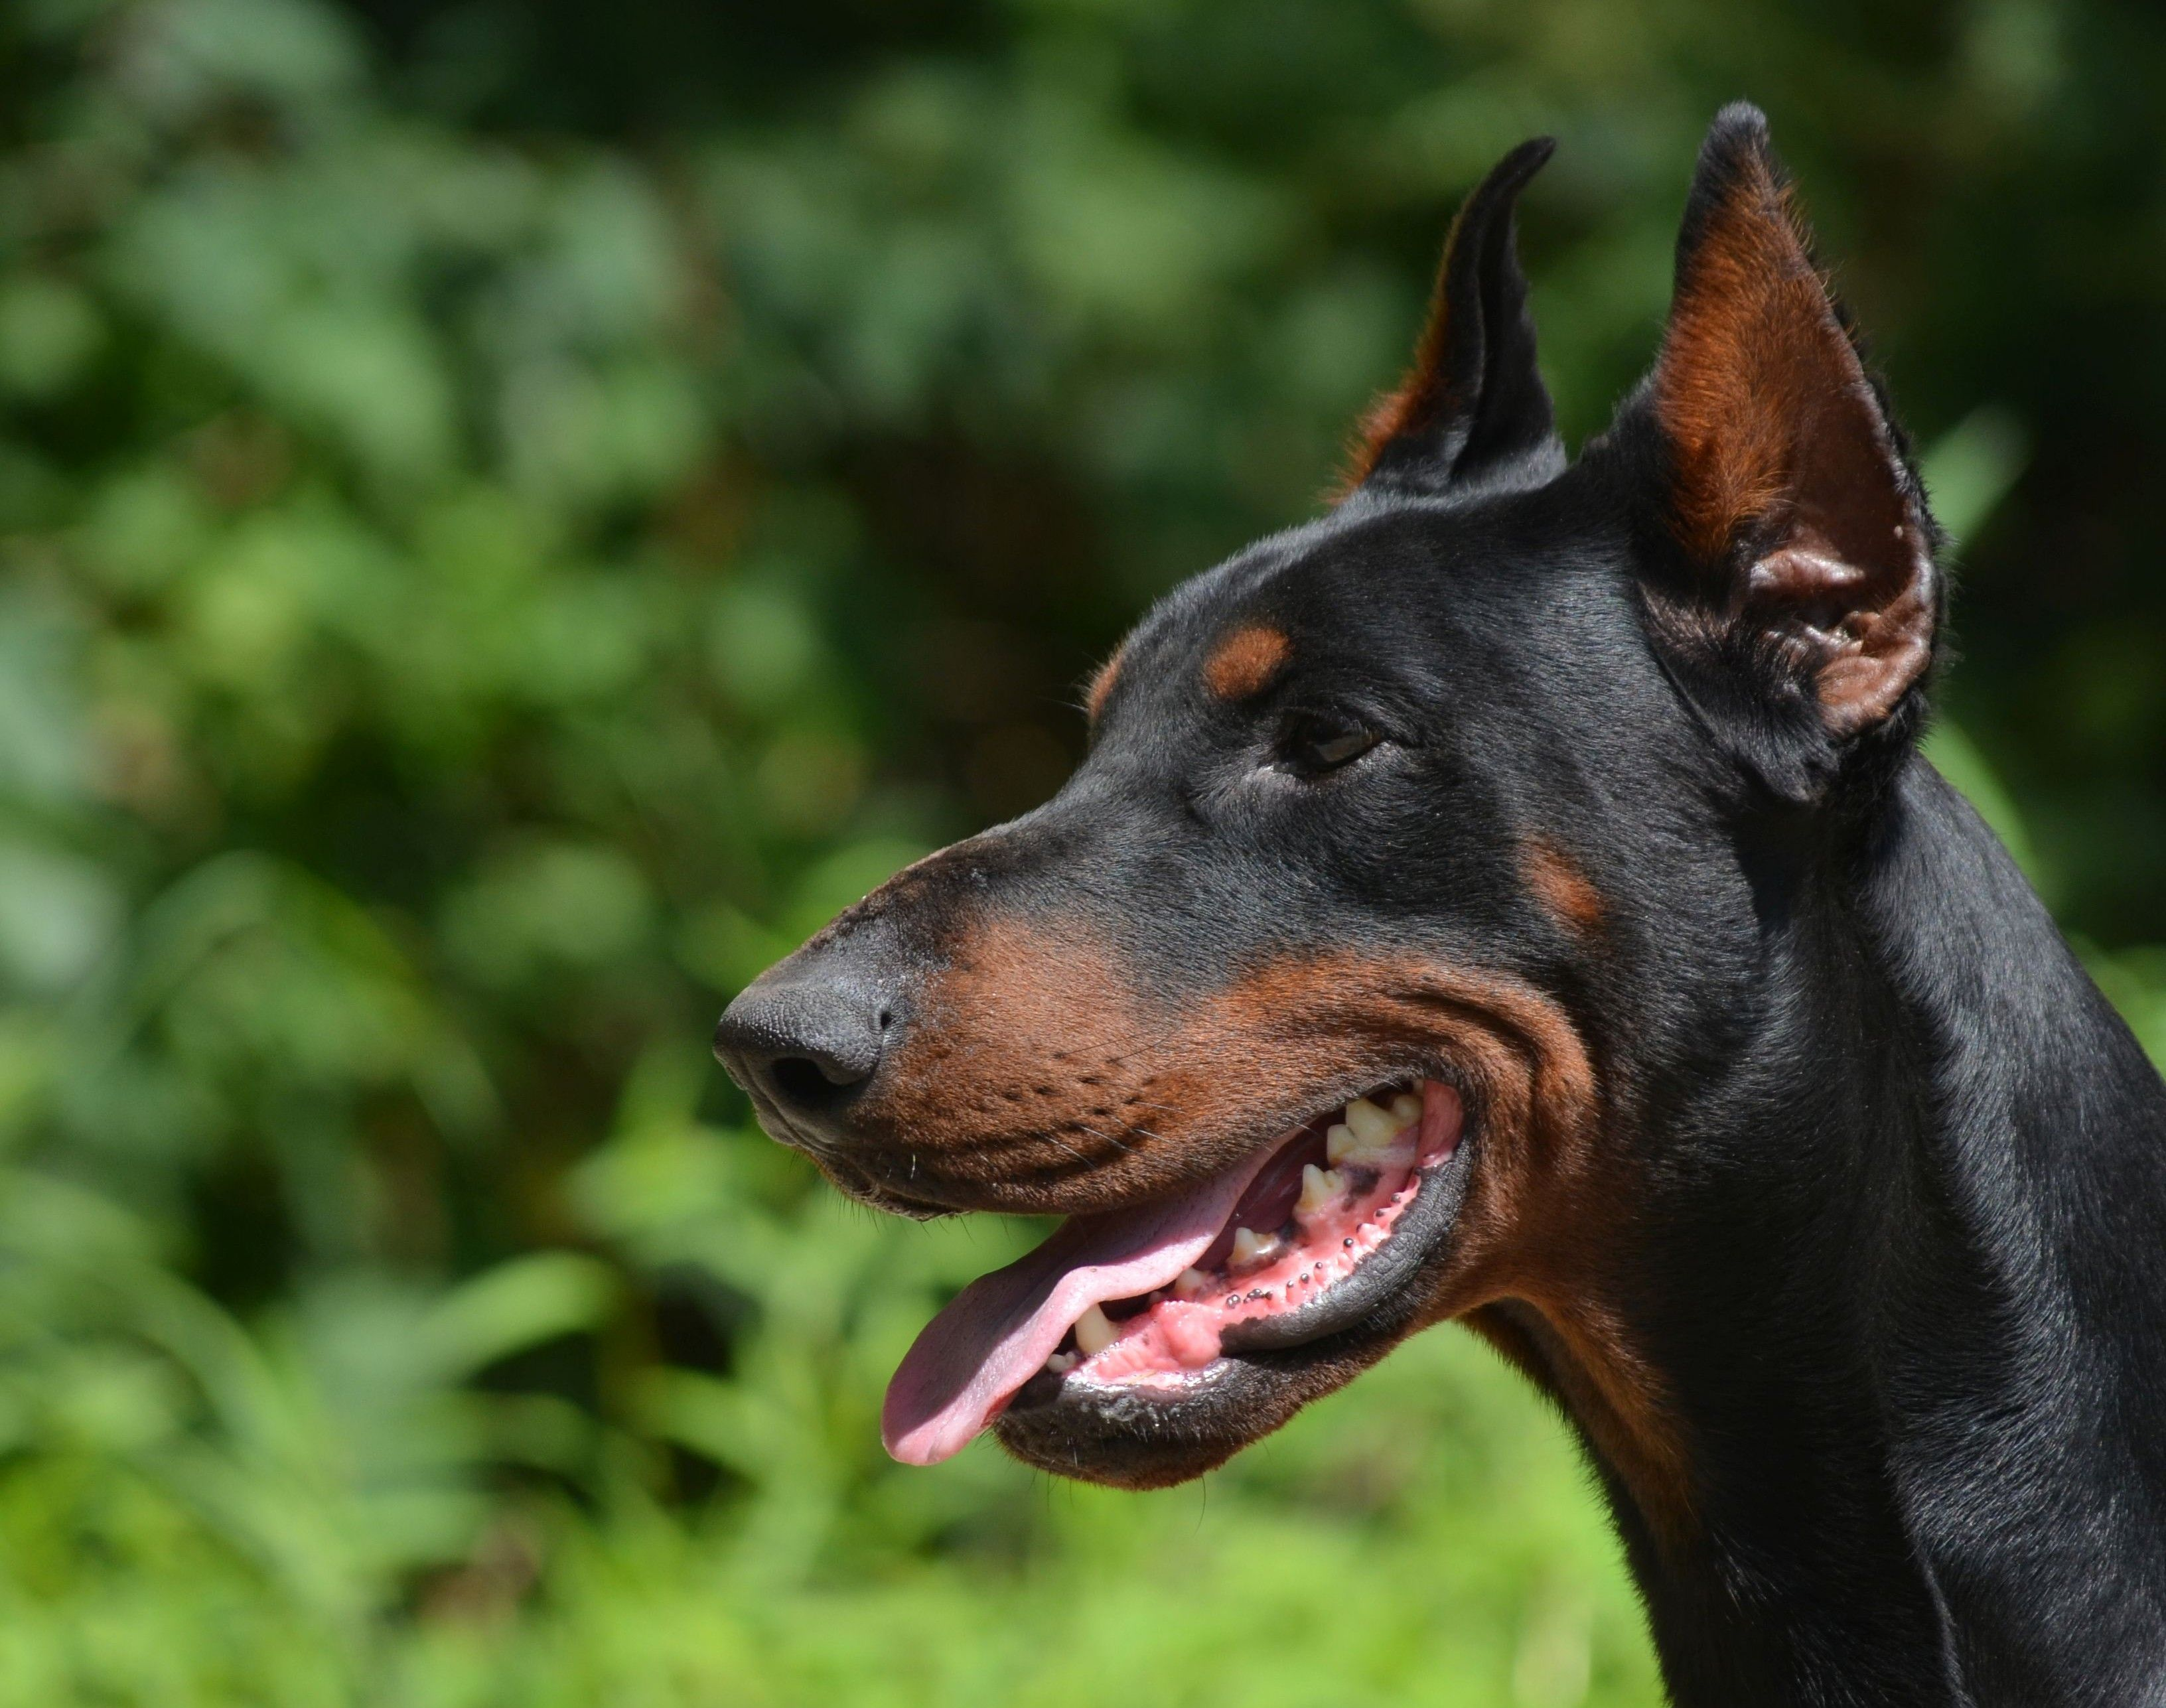 Dog for SaleDobermann Dogs, Dogs for sale, Animals and pets